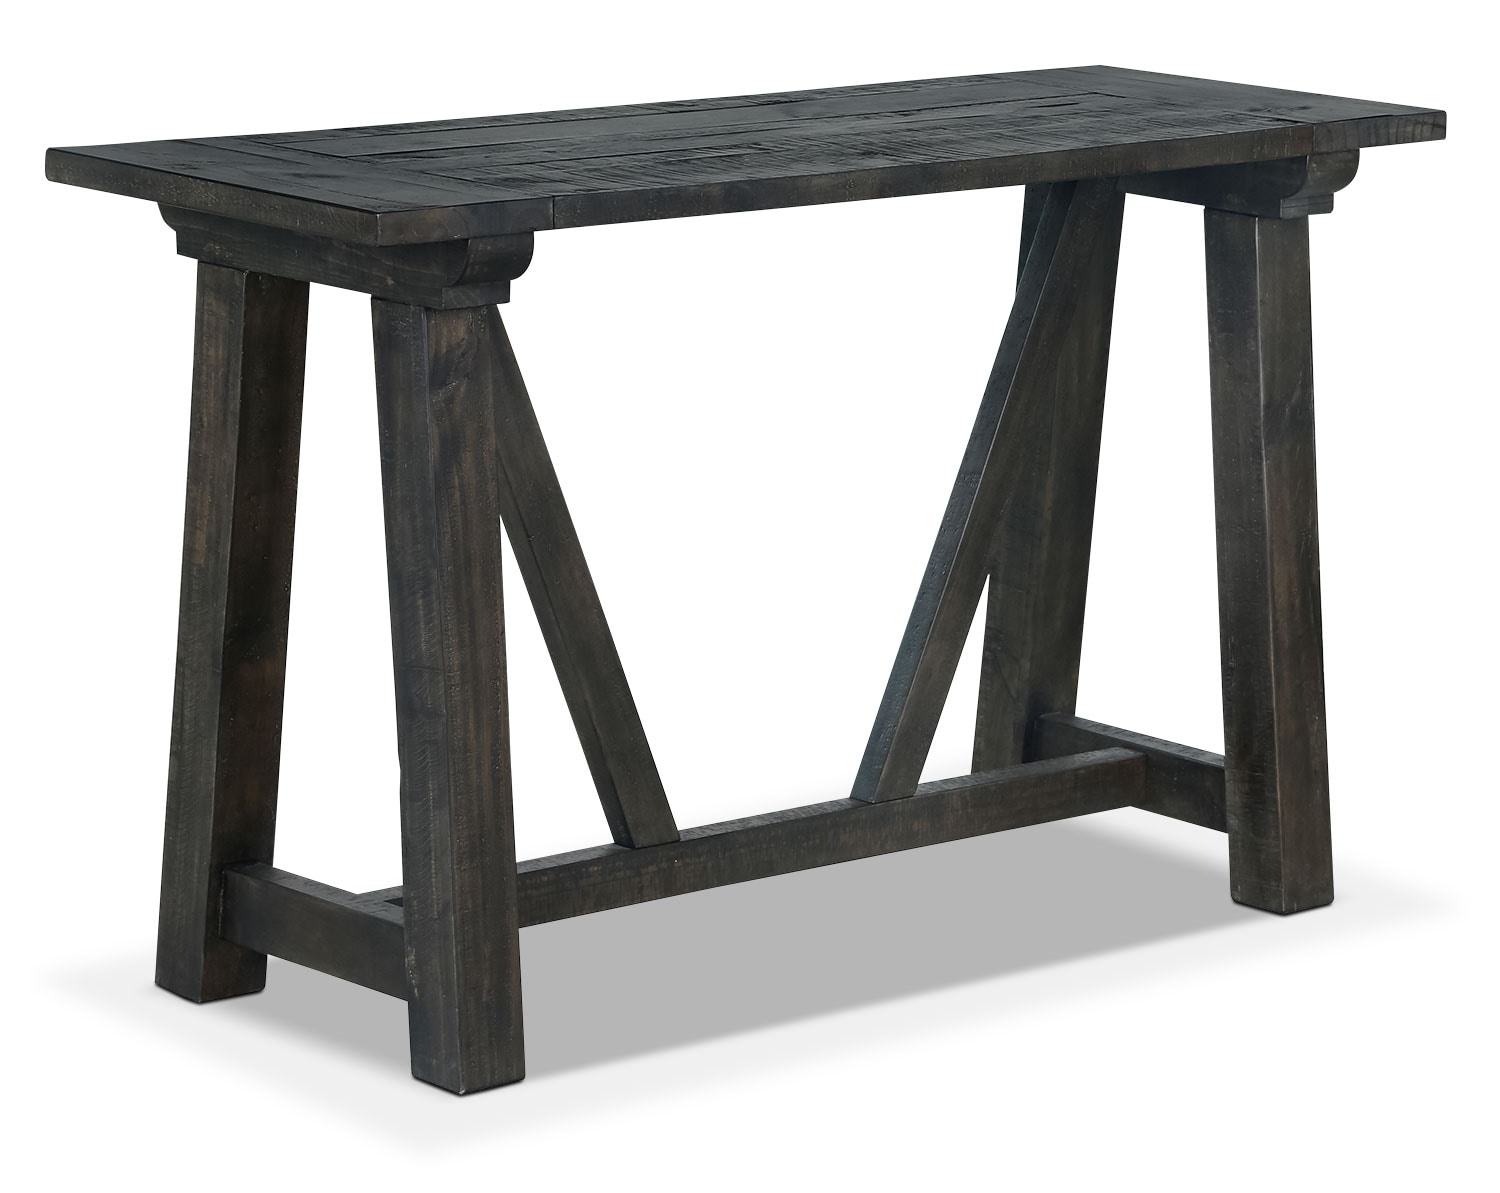 Accent and Occasional Furniture - Online Only - Townbrook Sofa Table - Weathered Charcoal